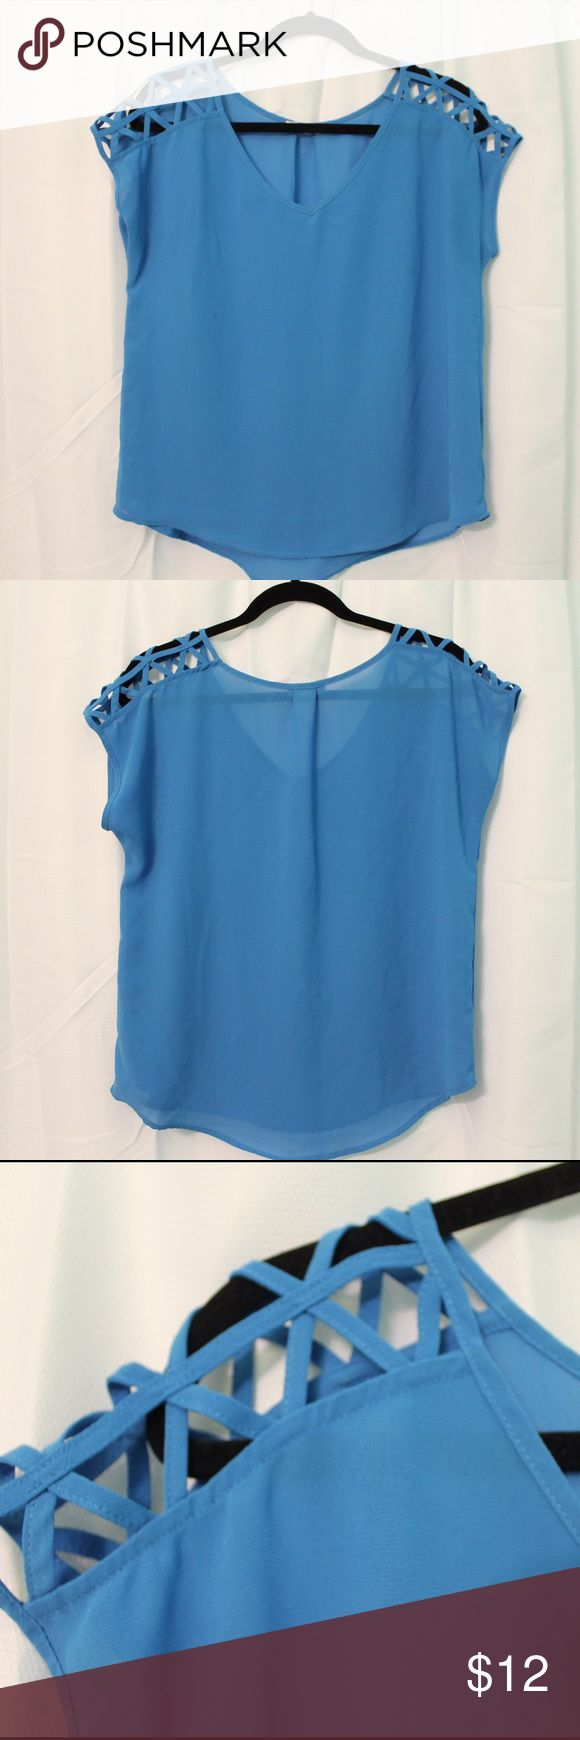 Blue Short Sleeve Top with Shoulder Detail Short sleeve top with awesome criss-cross design on the shoulders. Shoulder shirts are totally in right now! Light weight material and a great color! Long enough to be worn with leggings or jeans. (Not Tobi just listed for exposure). Tobi Tops Tees - Short Sleeve